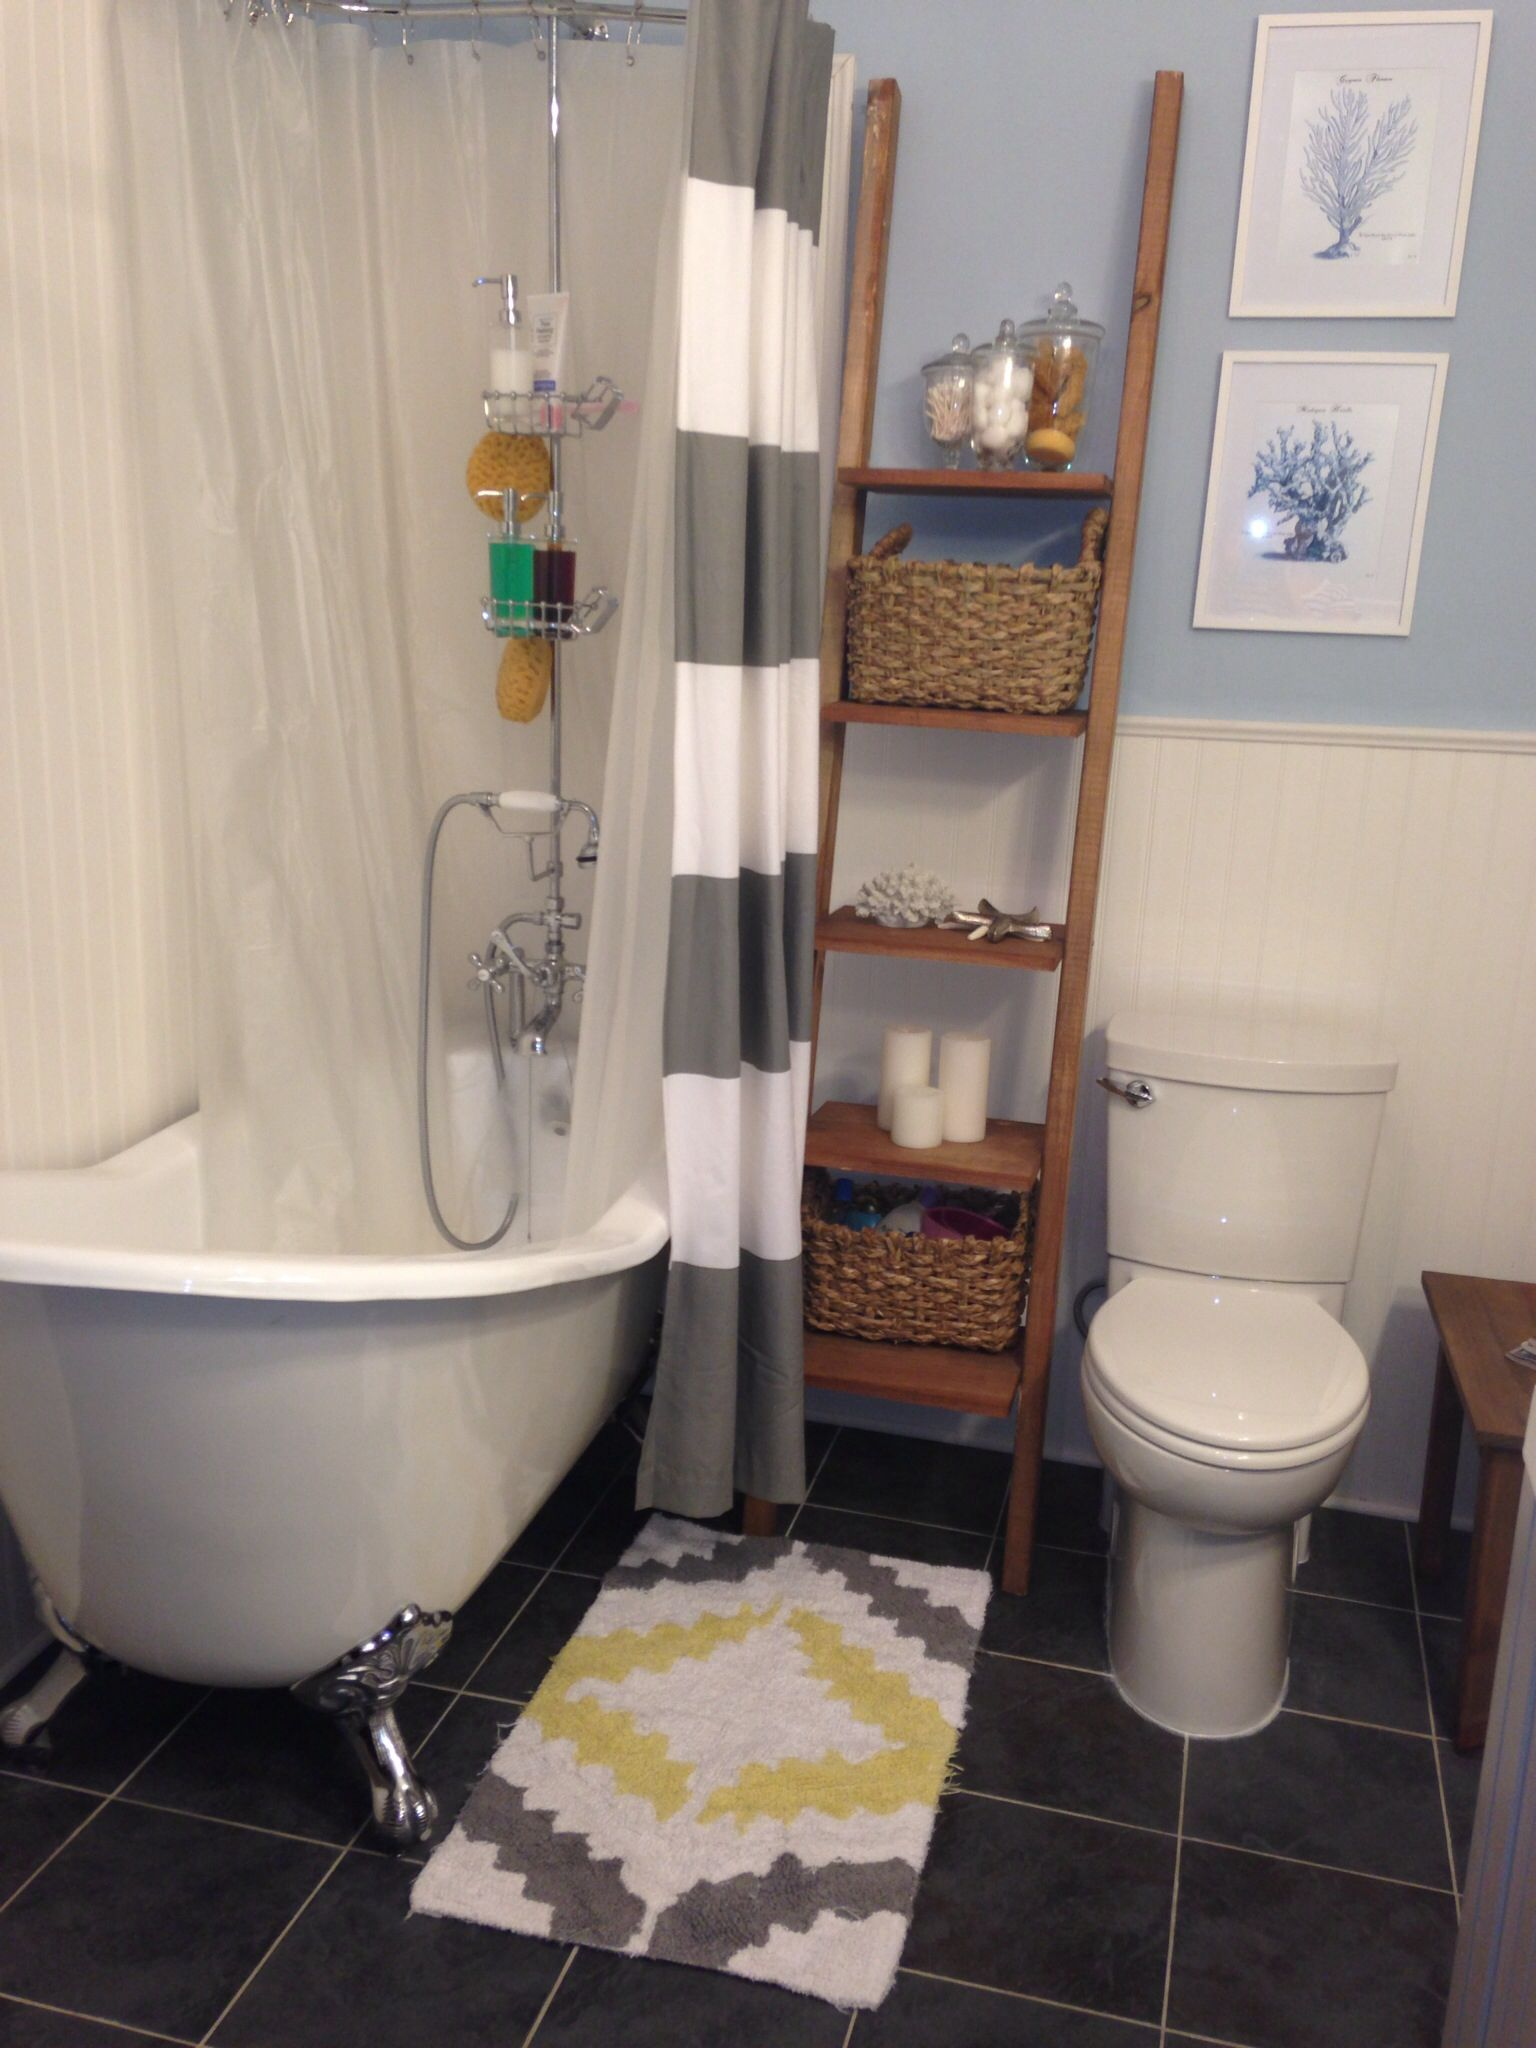 Clawfoot tub | Clawfoot tub bathroom small, Shower storage ...